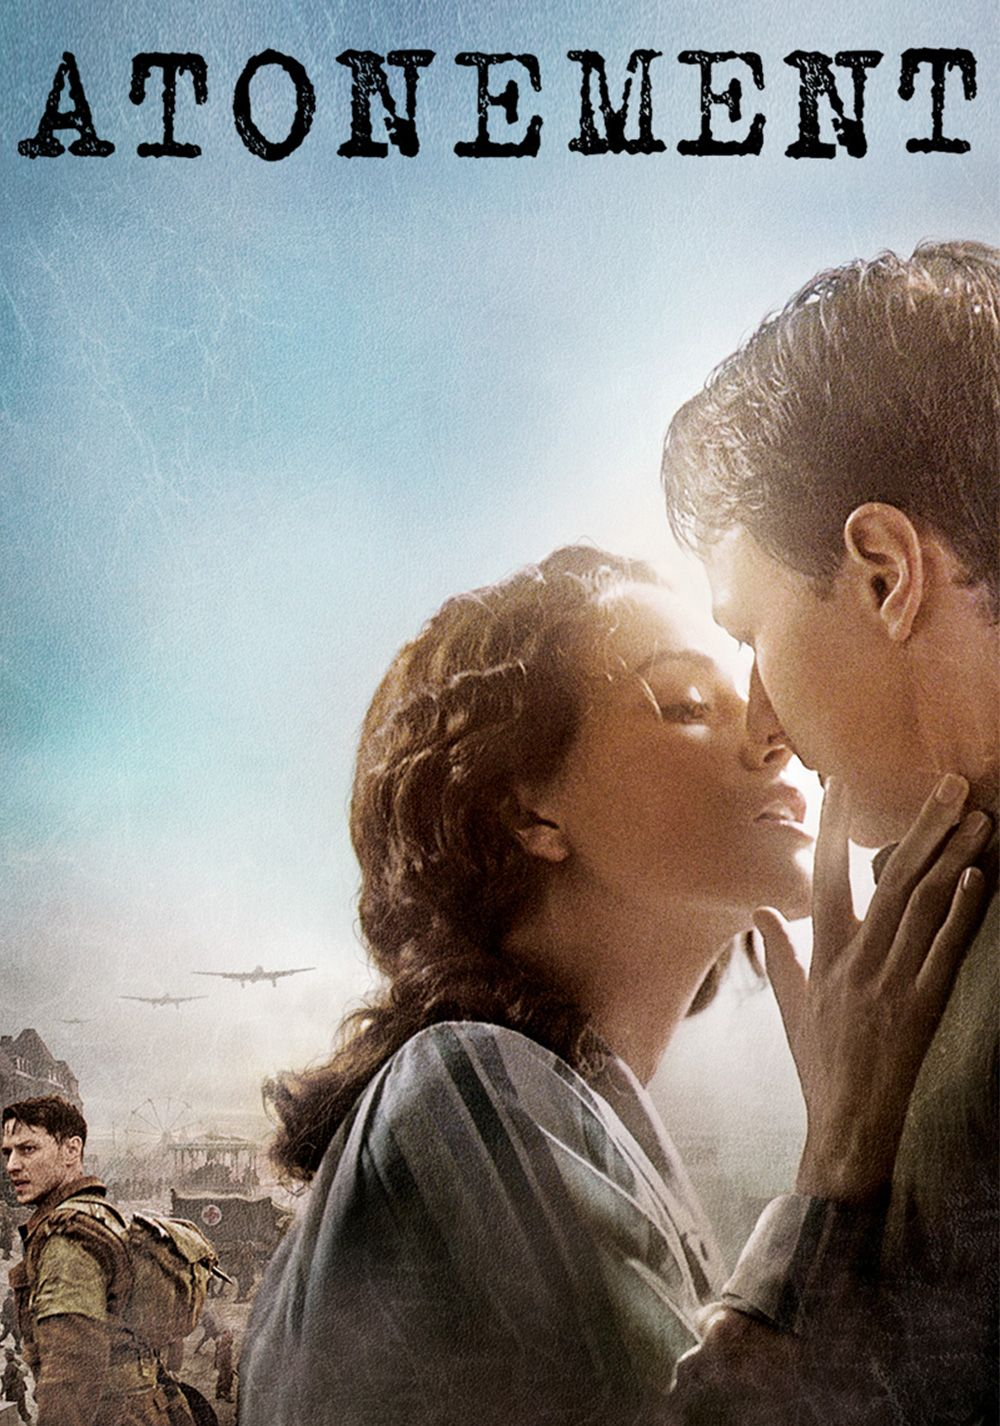 Direct Download Atonement 2007 Full HDrip Movie.Enjoy latest 2016,2017  movies on your mobile,pc and tablet only on hdmoviessite